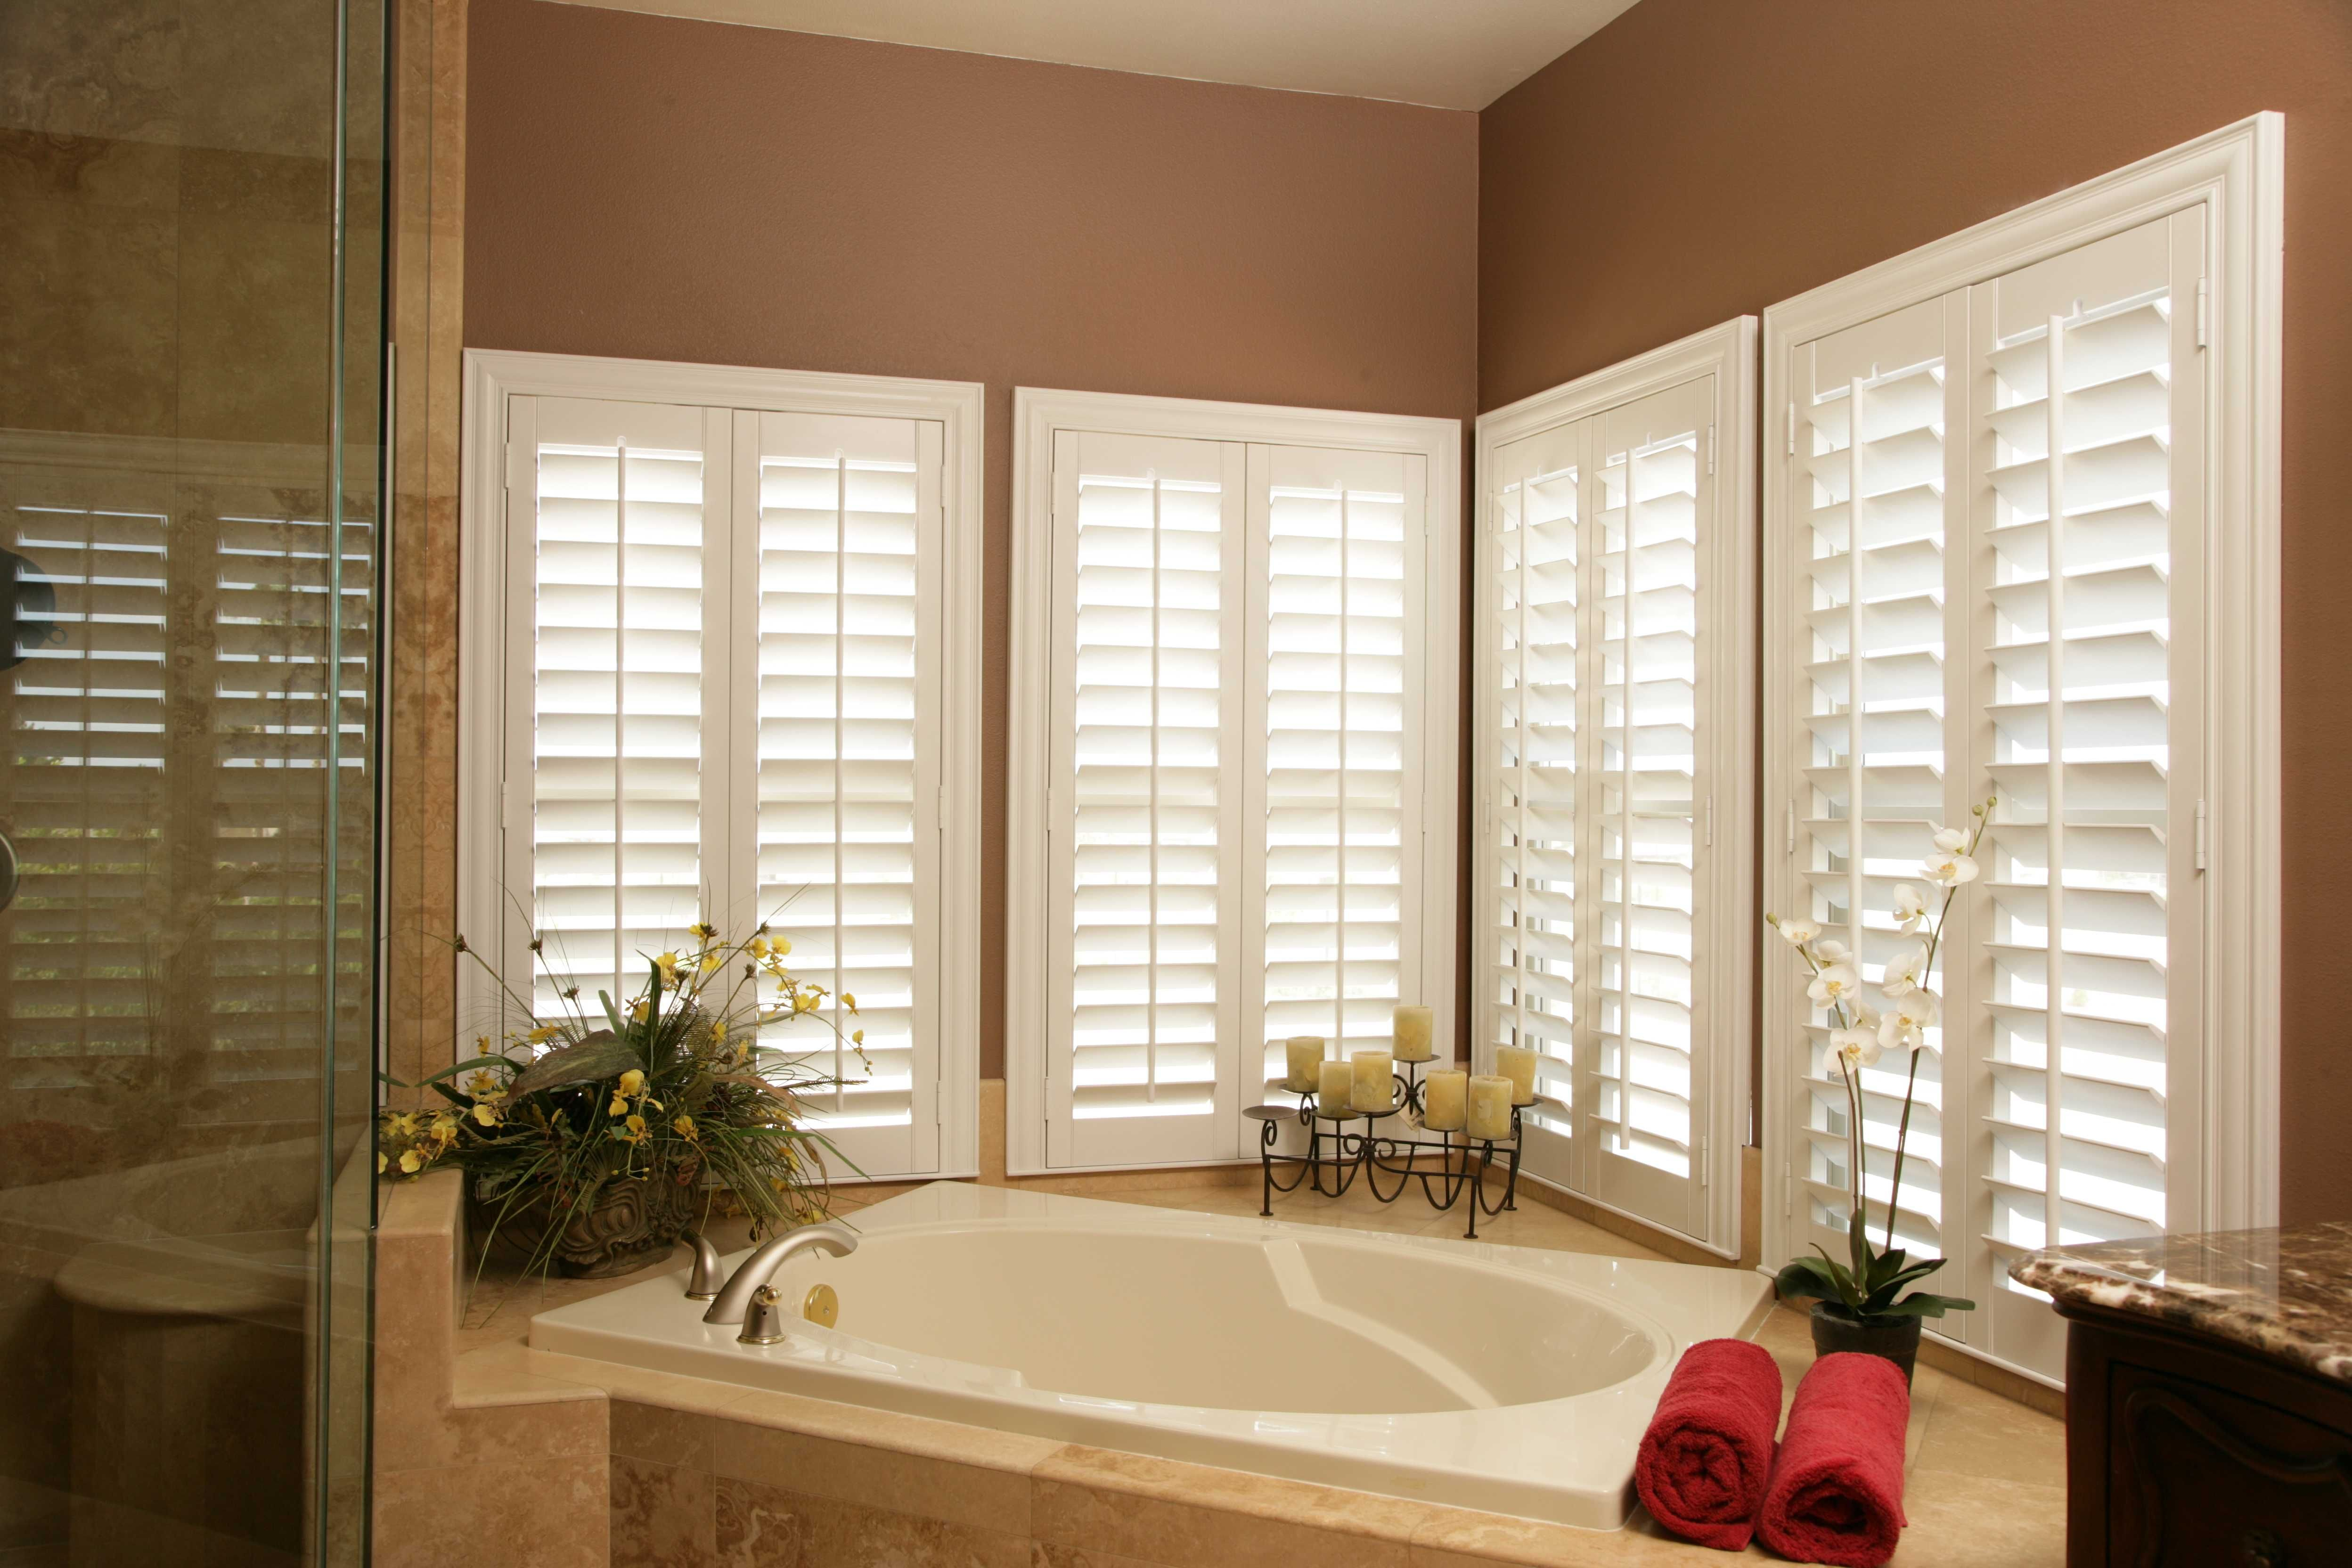 for window decor over tuscan design roman easy in bay kitchen shades ideas silk sink vs windows kitchens treatments cost bow cheap valances best of curtains blinds homeprada